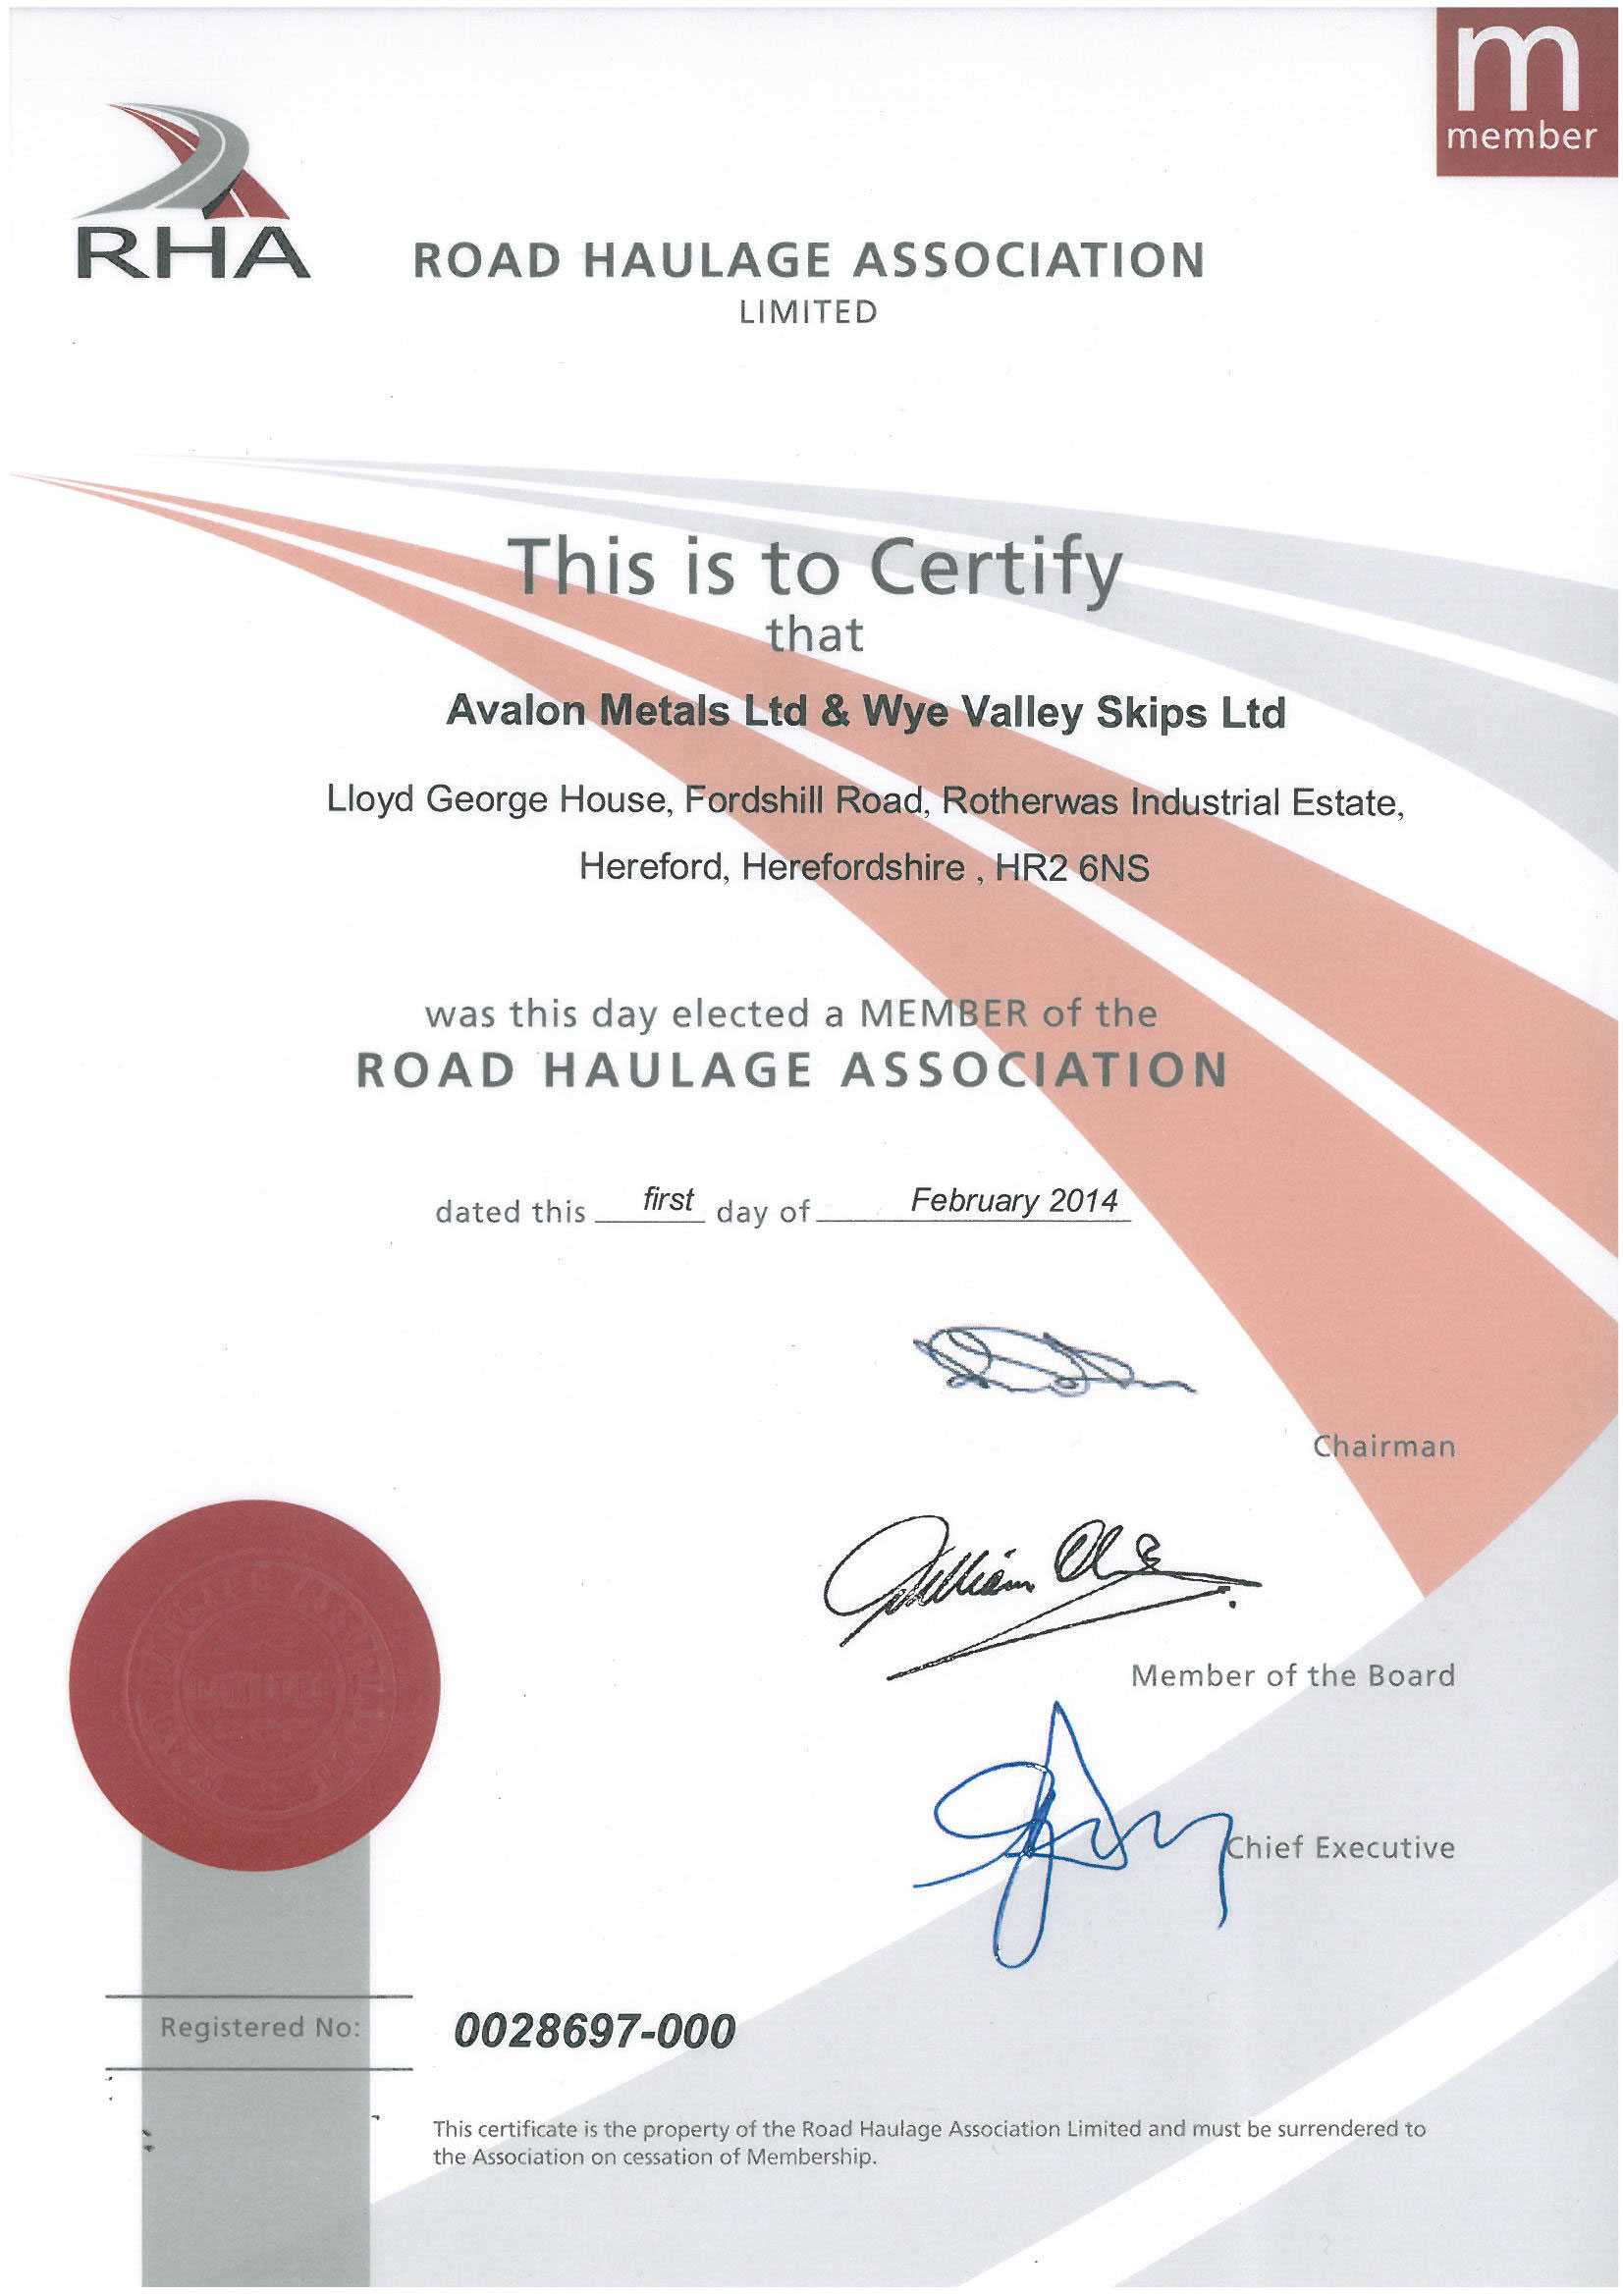 Road Haulage Association Member Certificate